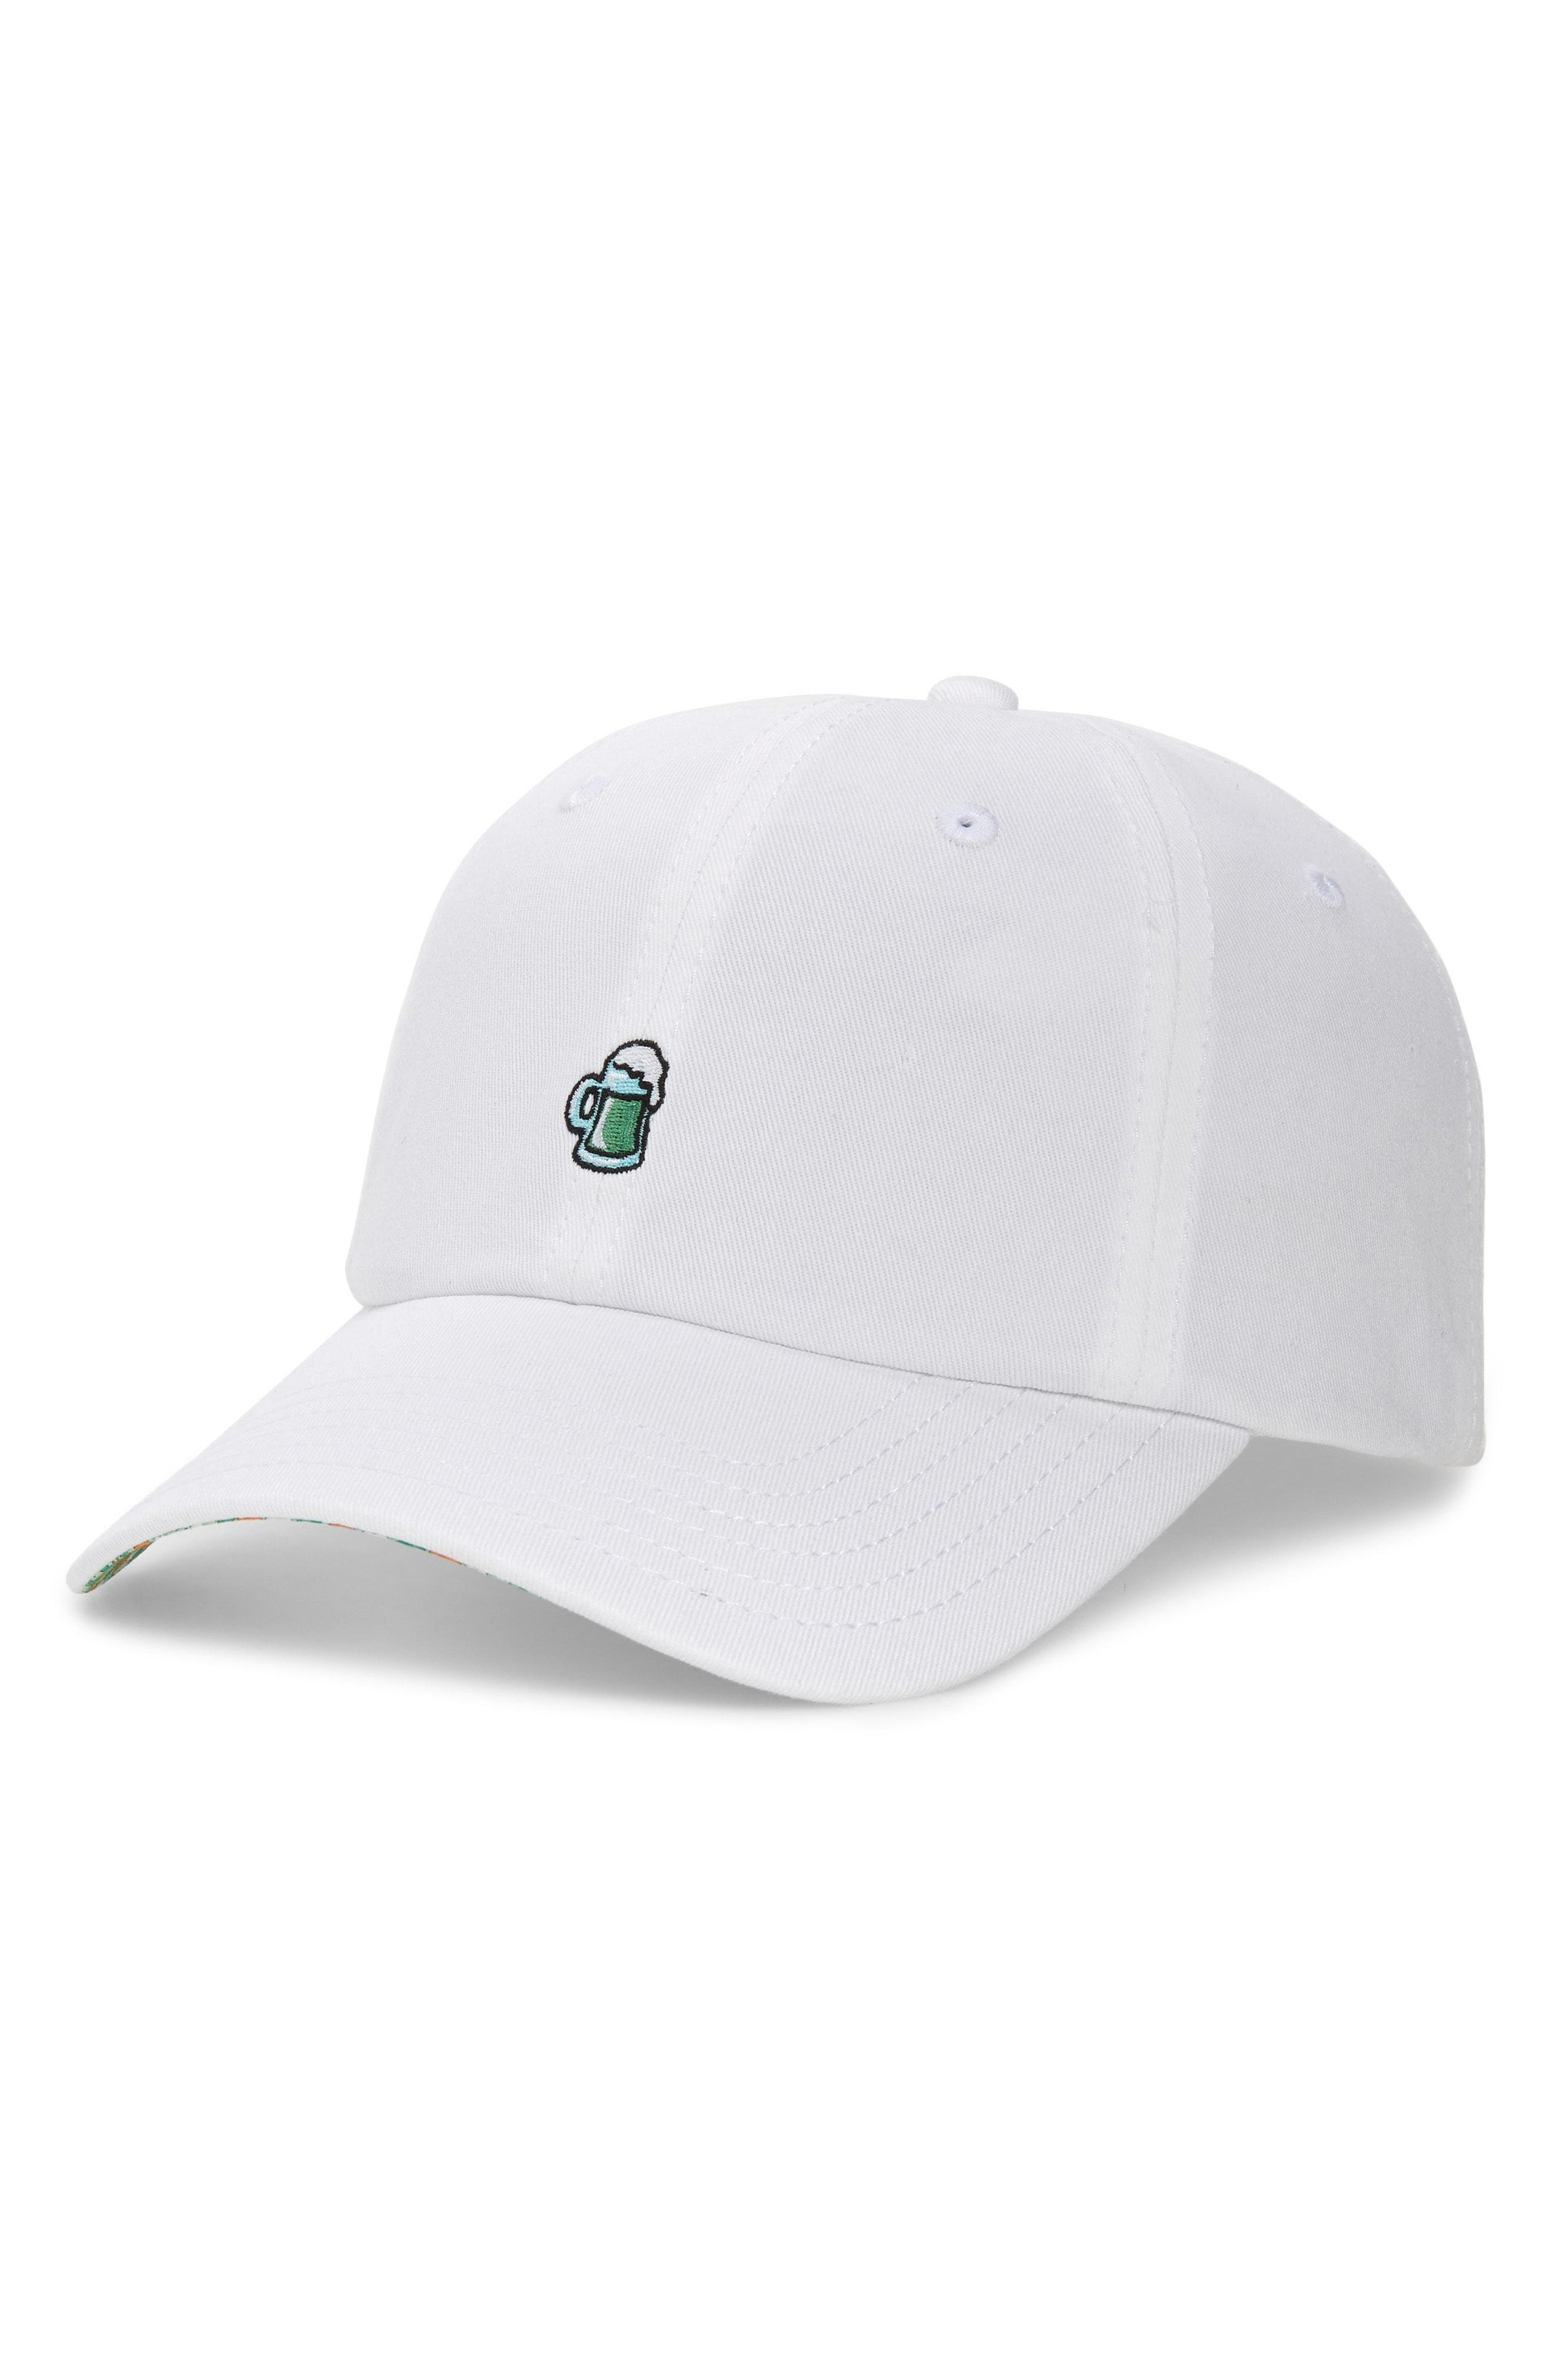 Lyst - Vineyard Vines St. Paddy s Day Twill Ball Cap - in White for Men a36615039e3b